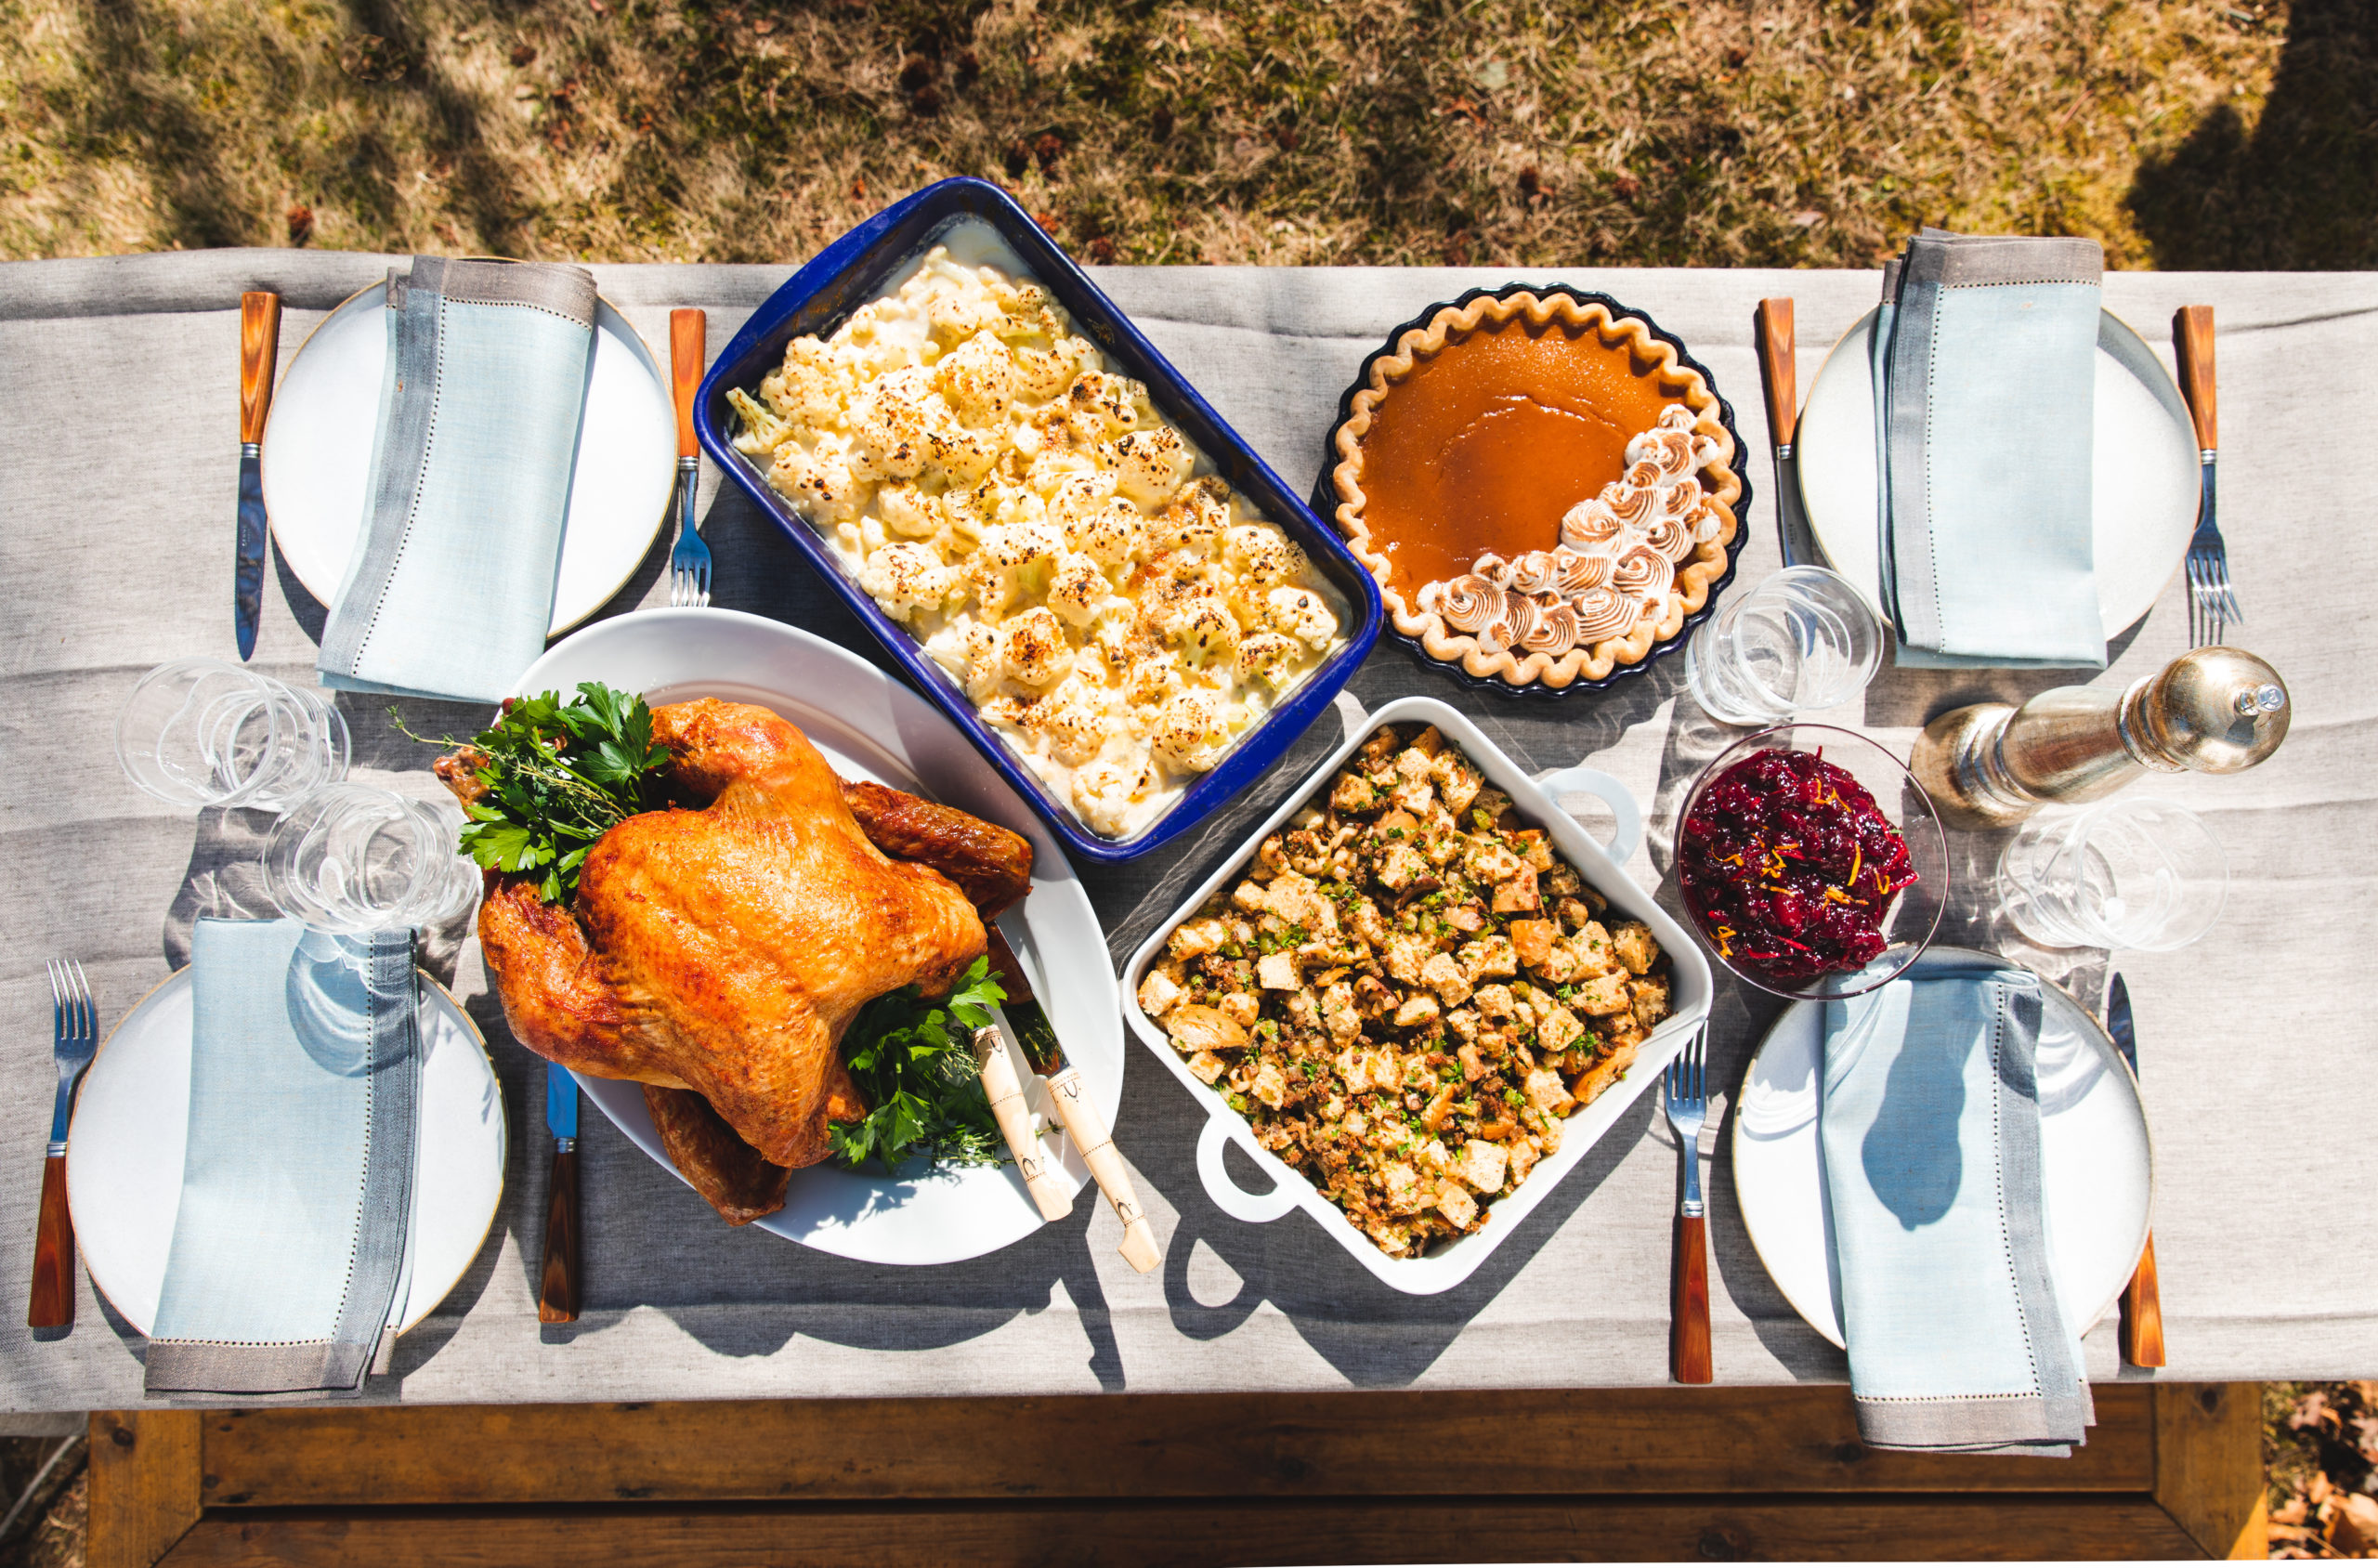 A Thanksgiving table setting.